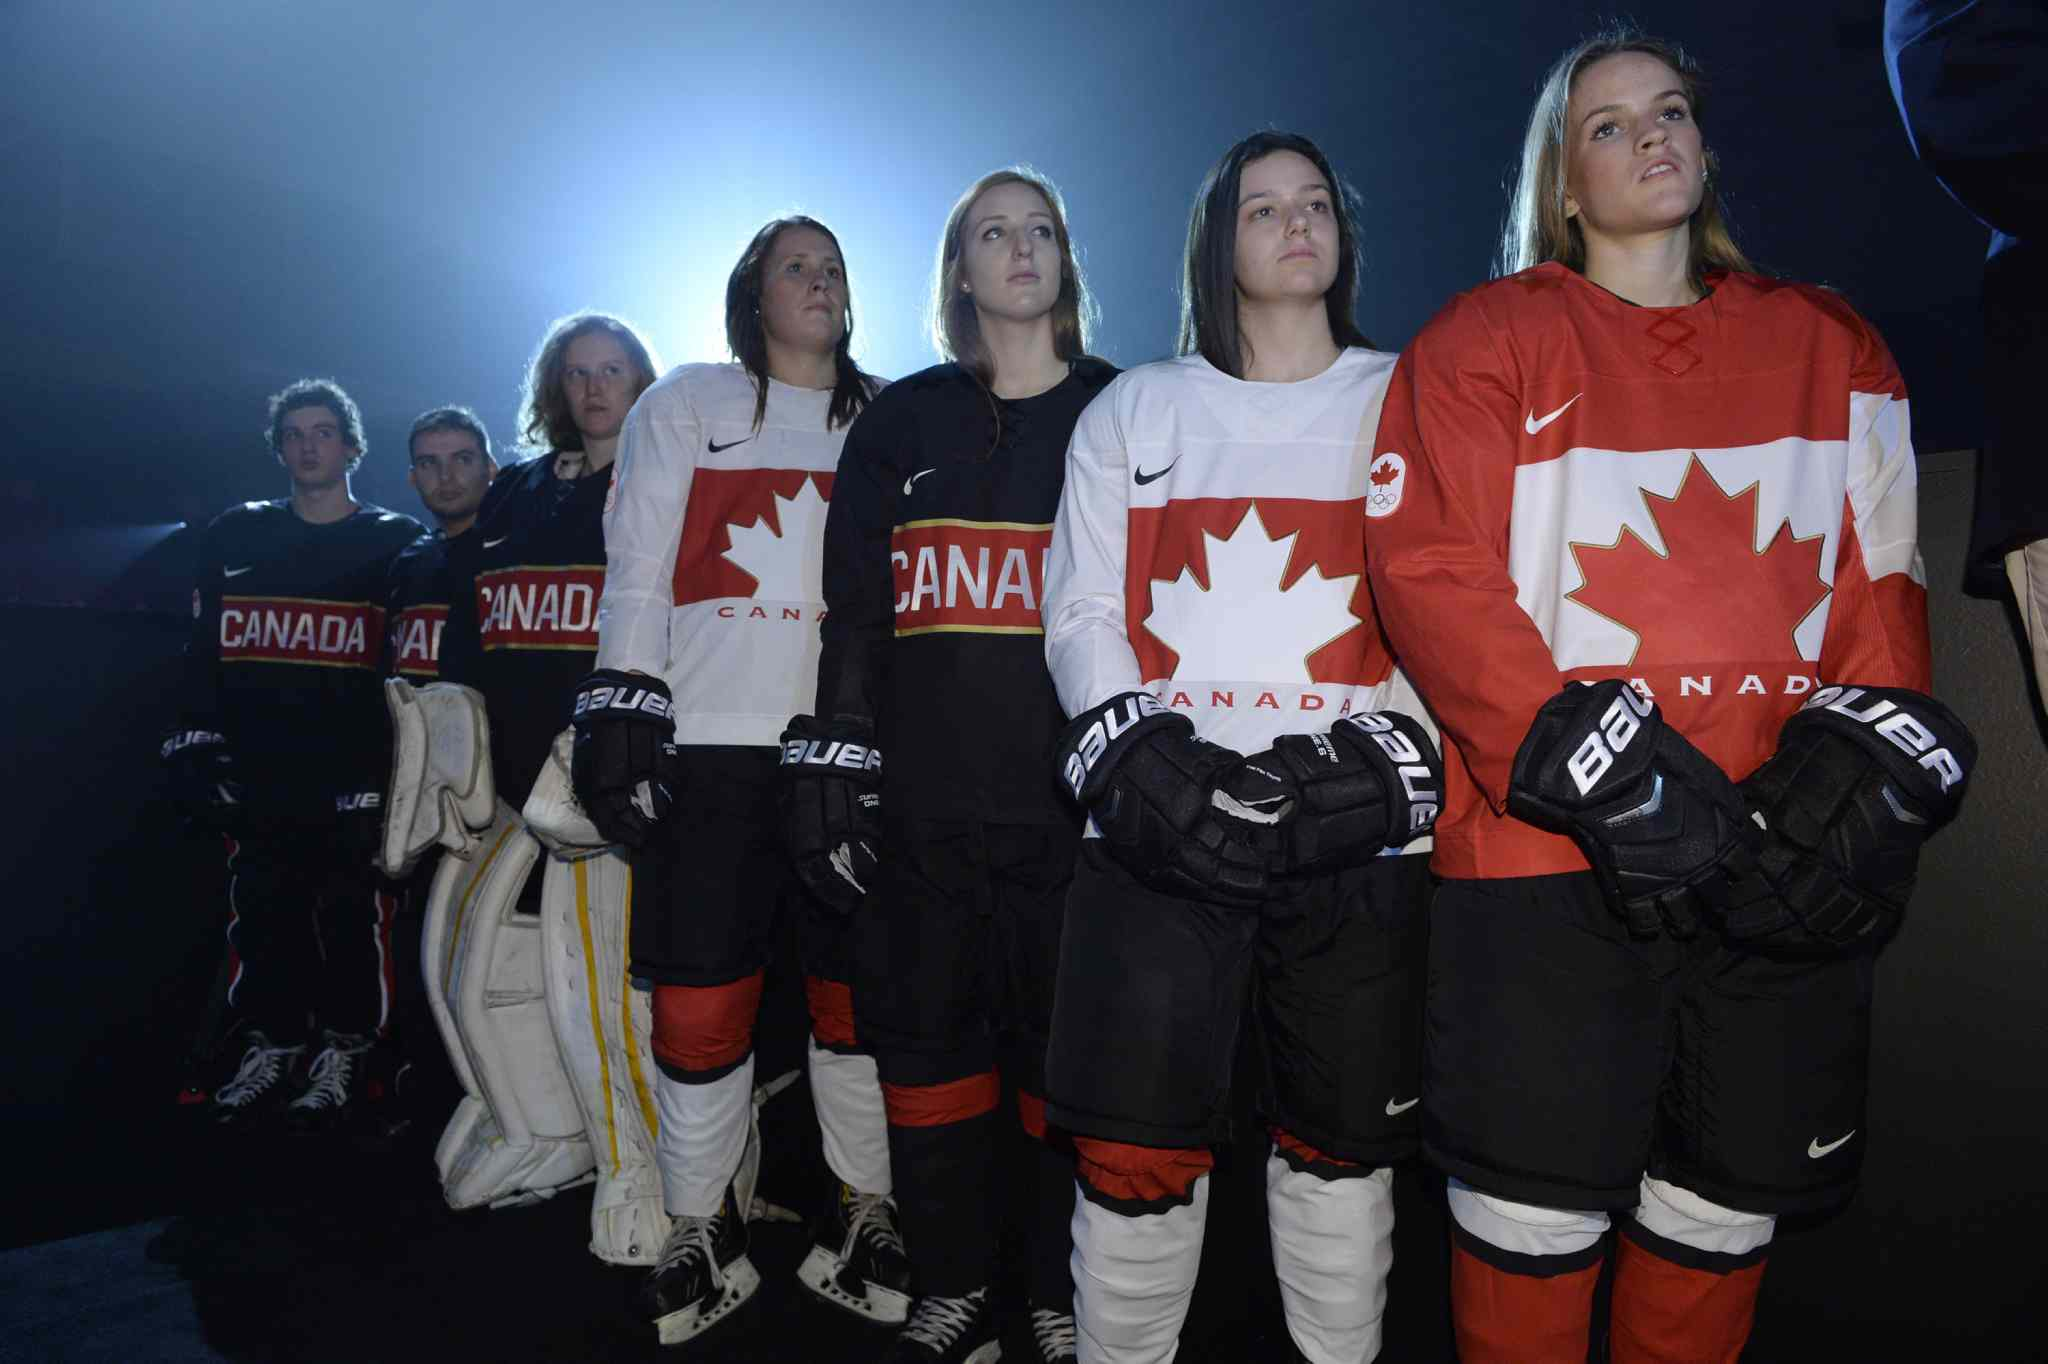 Youth players model the new Canadian Olympic team hockey jerseys at Tuesday's official unveiling in Toronto.